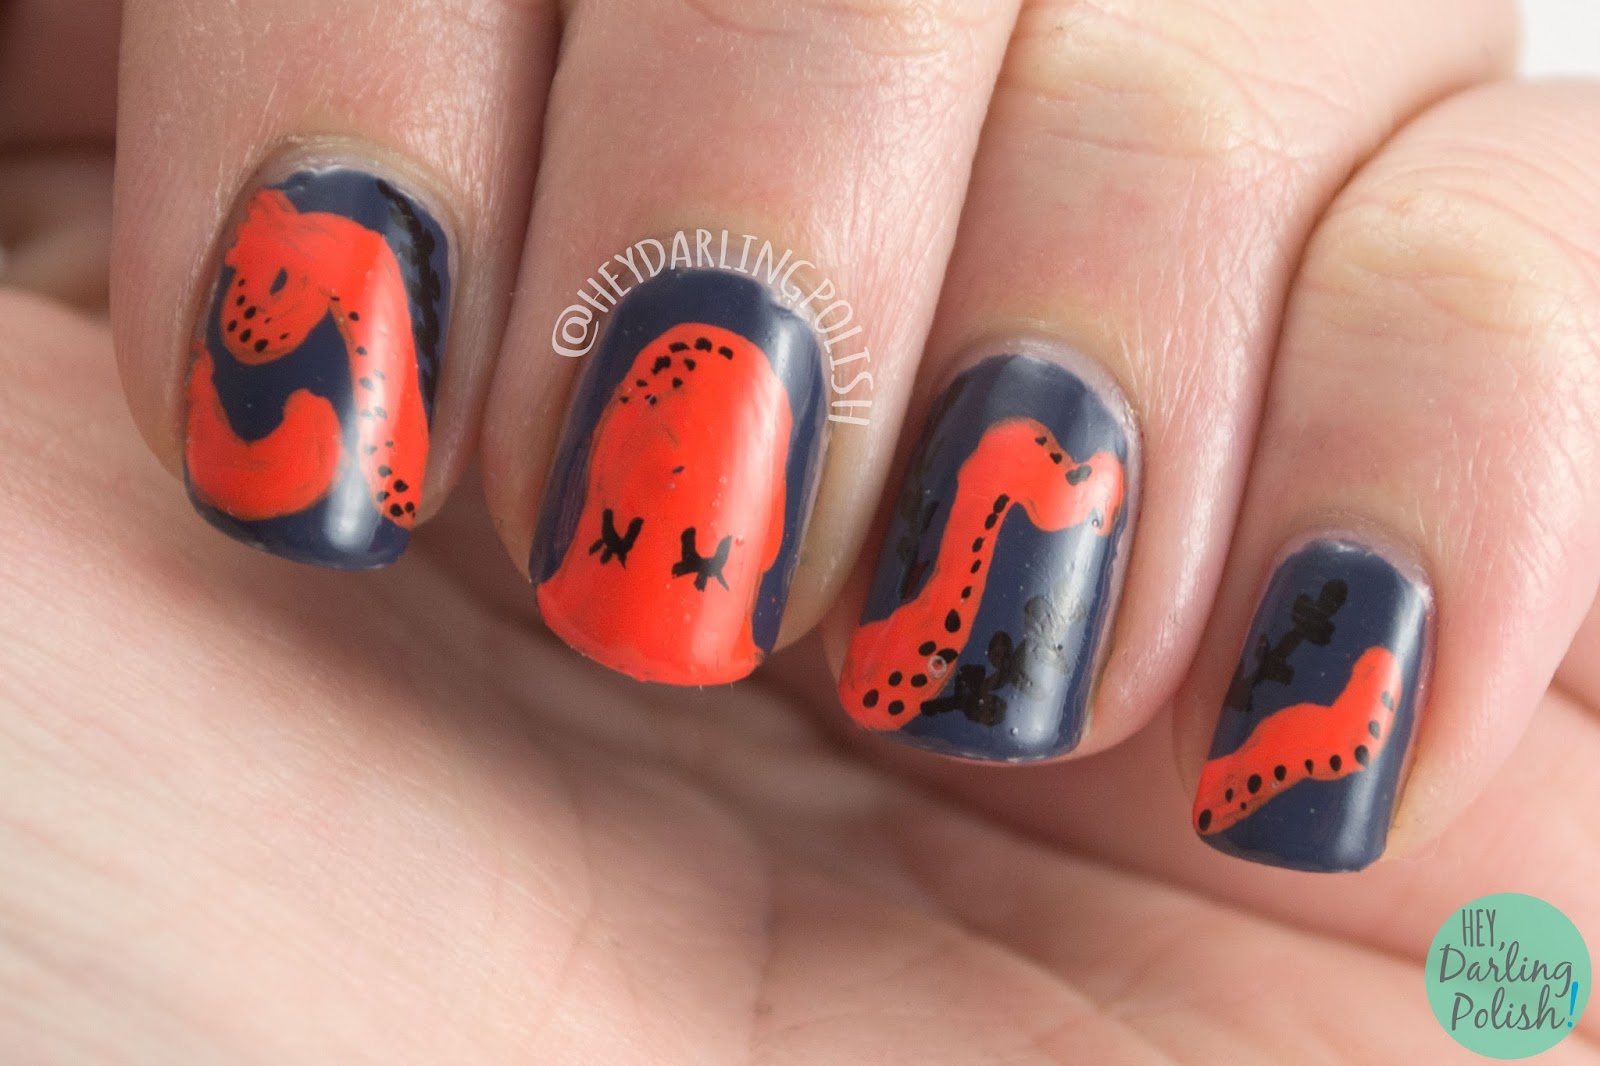 nails, nail art, nail polish, octopus, hey darling polish, pattern, guest post